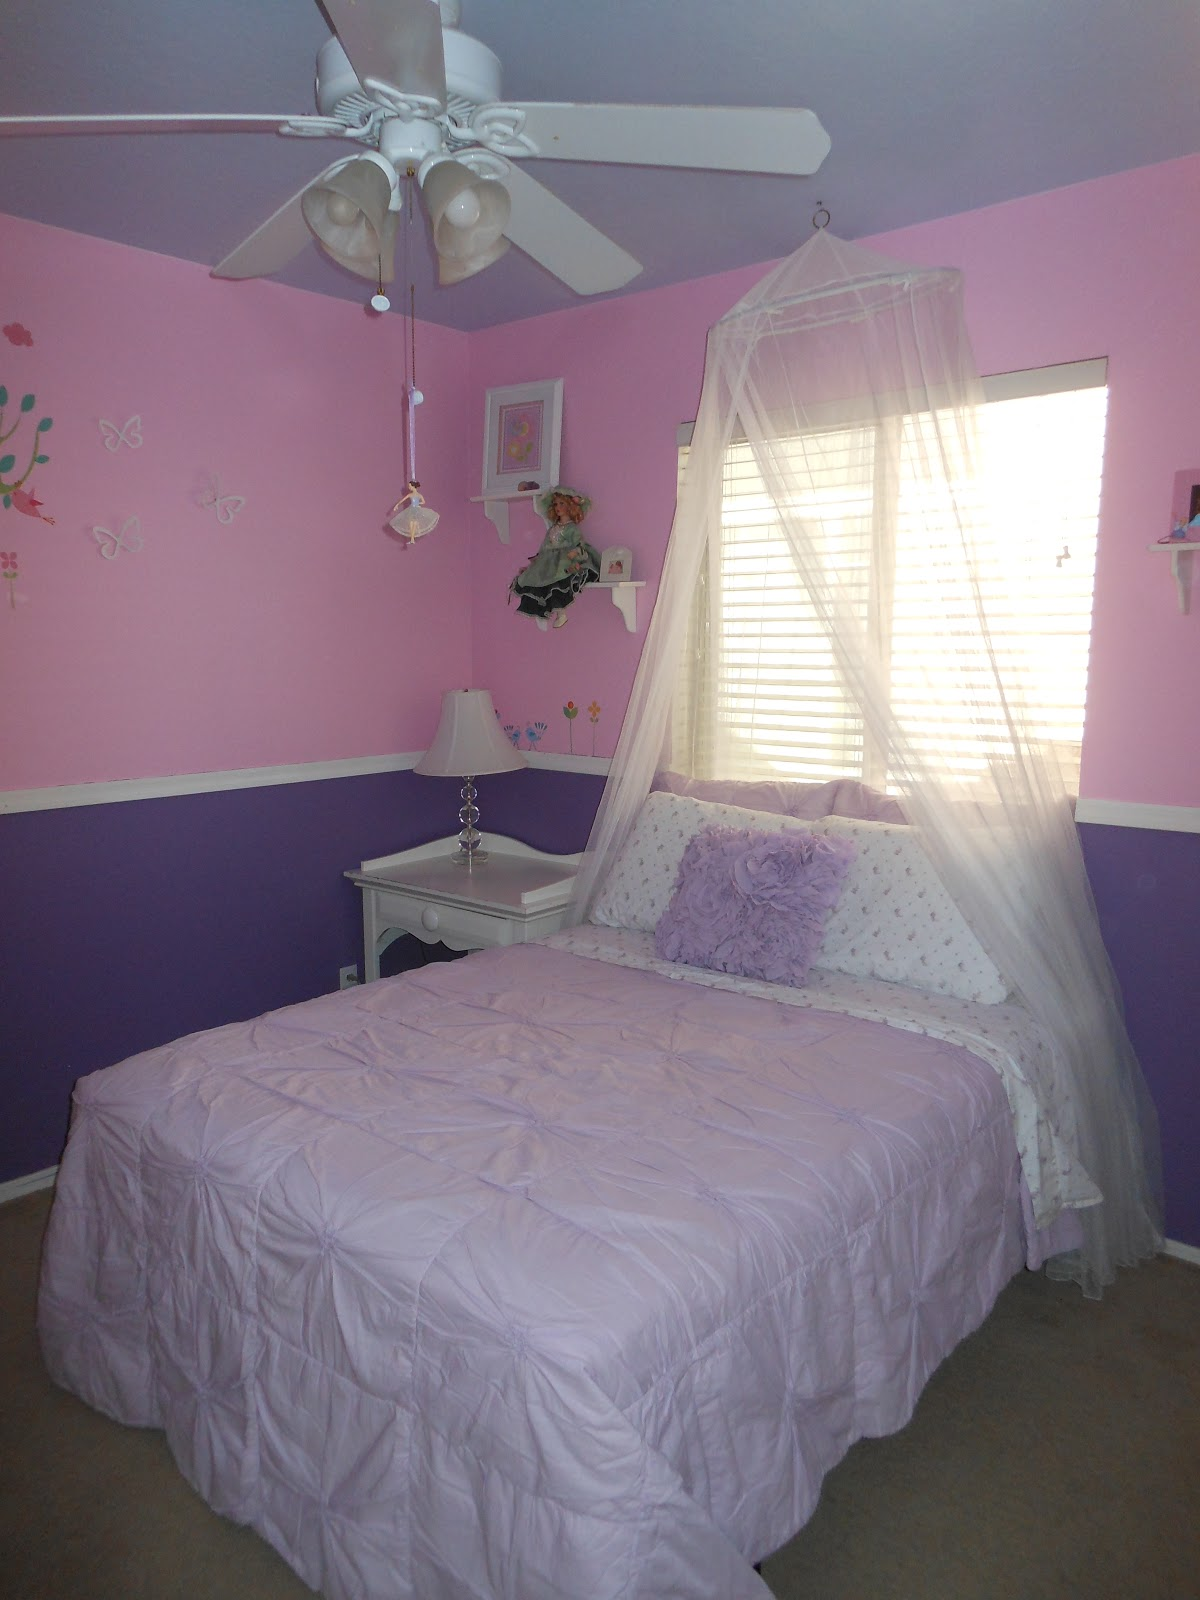 Pink and purple girls bedroom crafty cer girl - Purple and pink girls bedroom ...